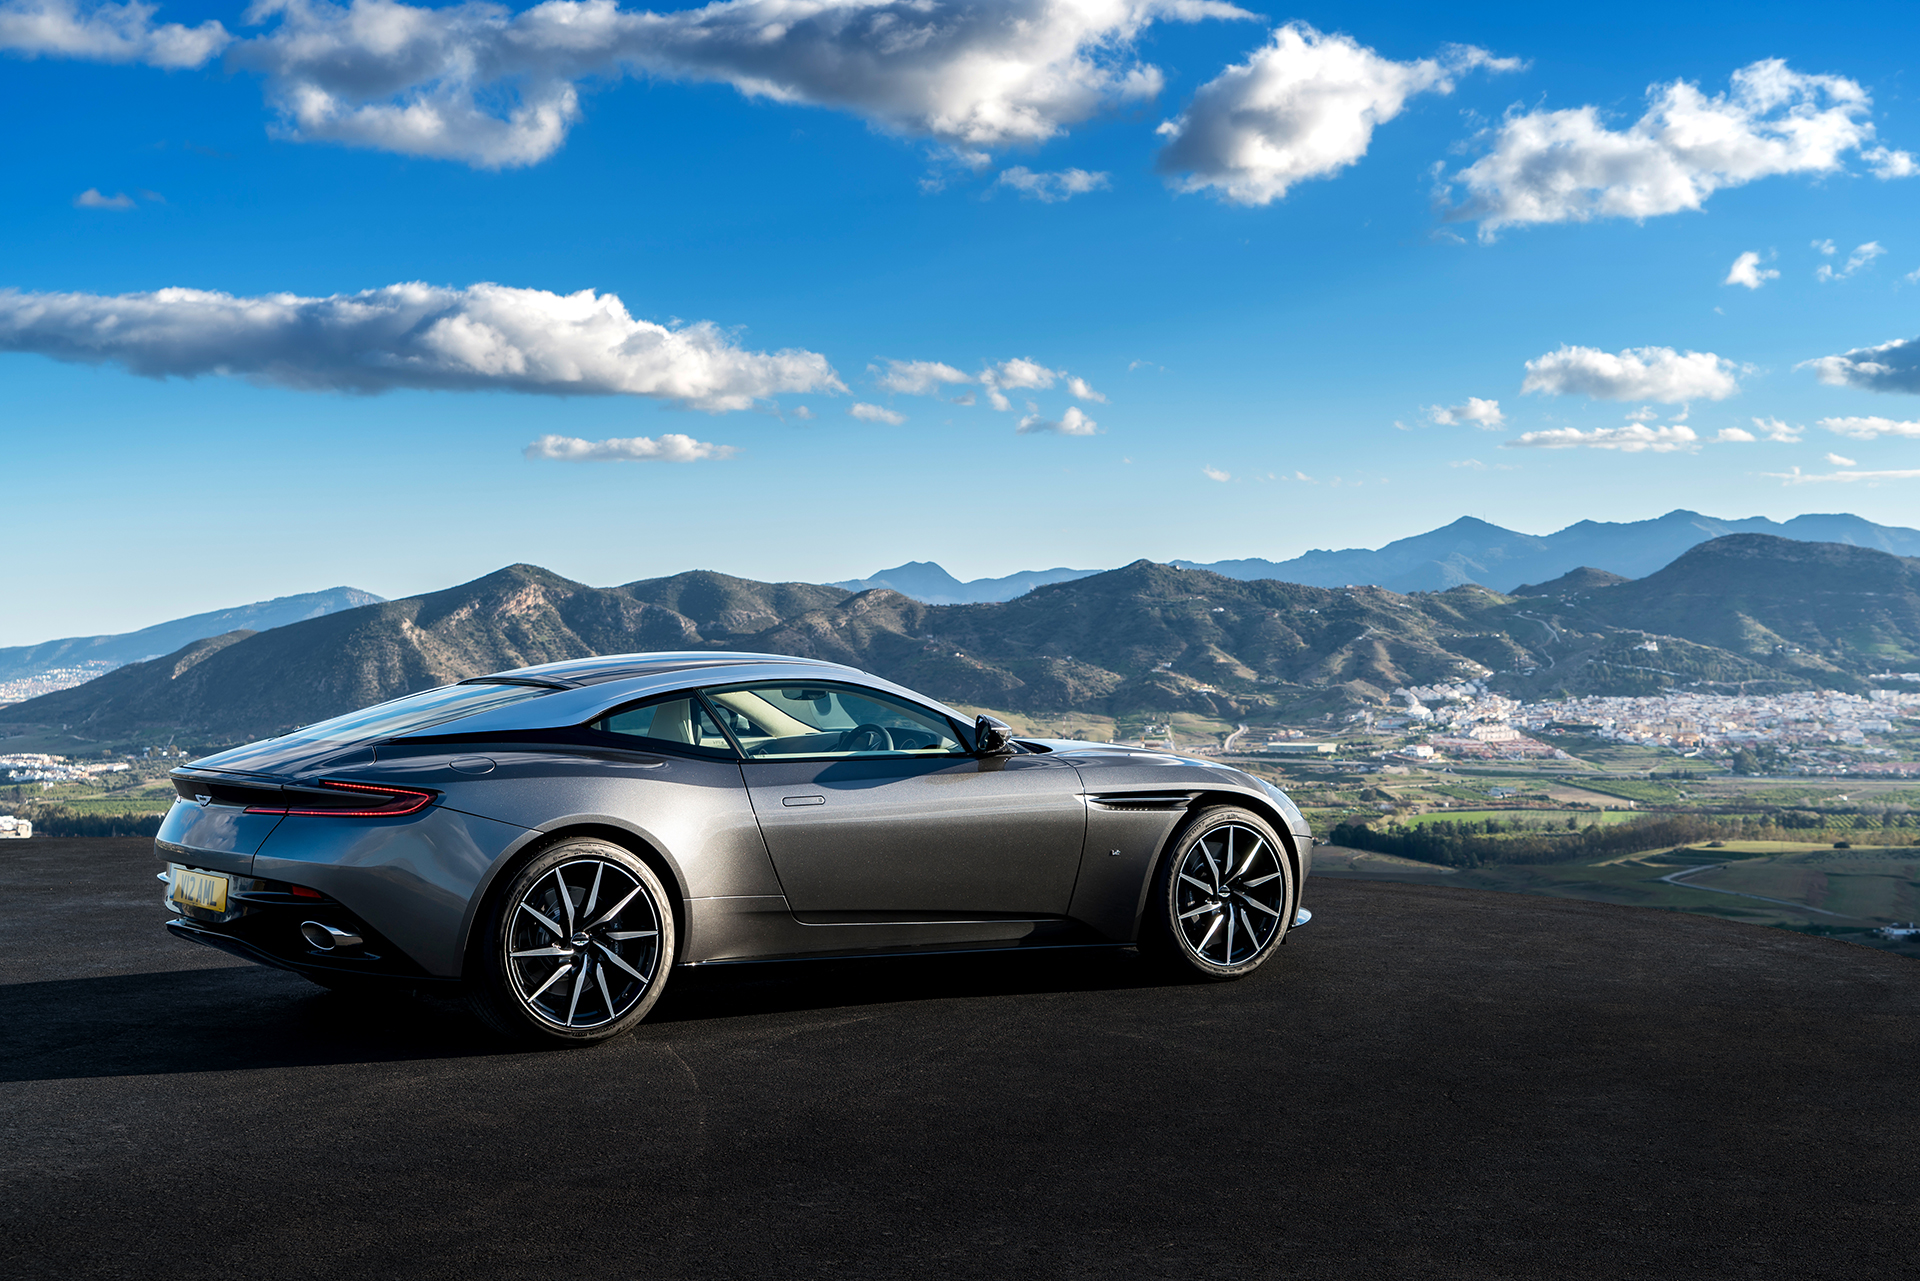 Aston Martin DB11 - 2016 - side-face / profil